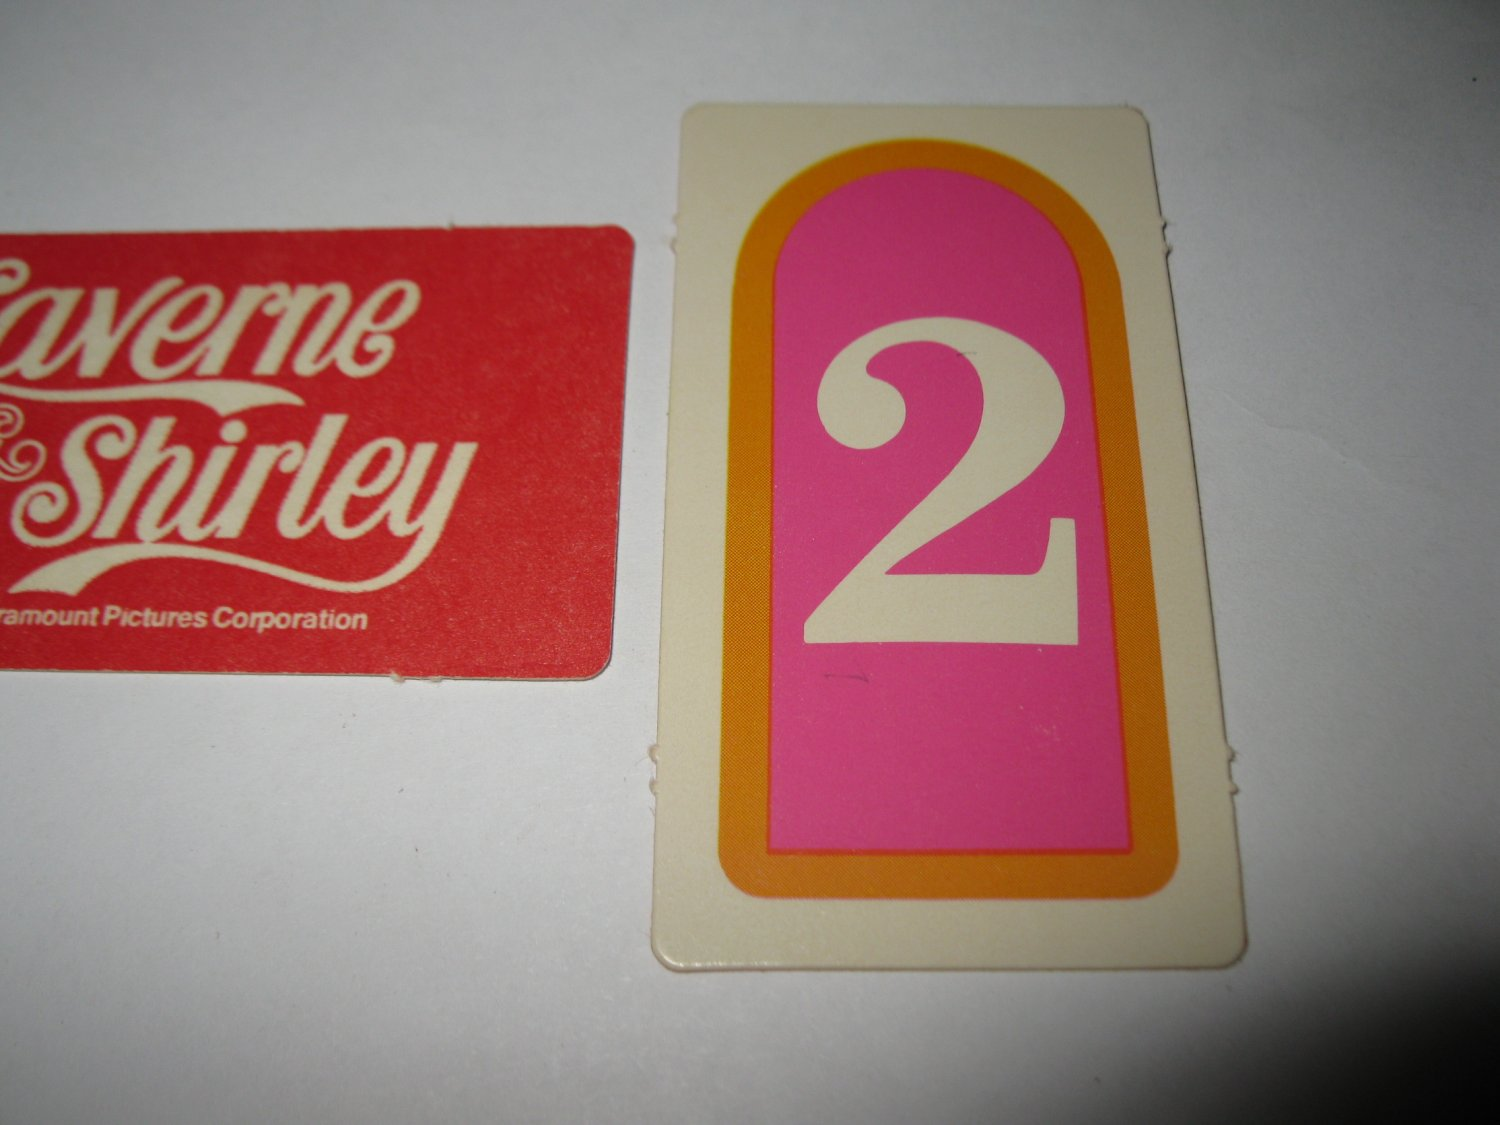 1977 Laverne & Shirley Board Game Piece: single Game Card #2